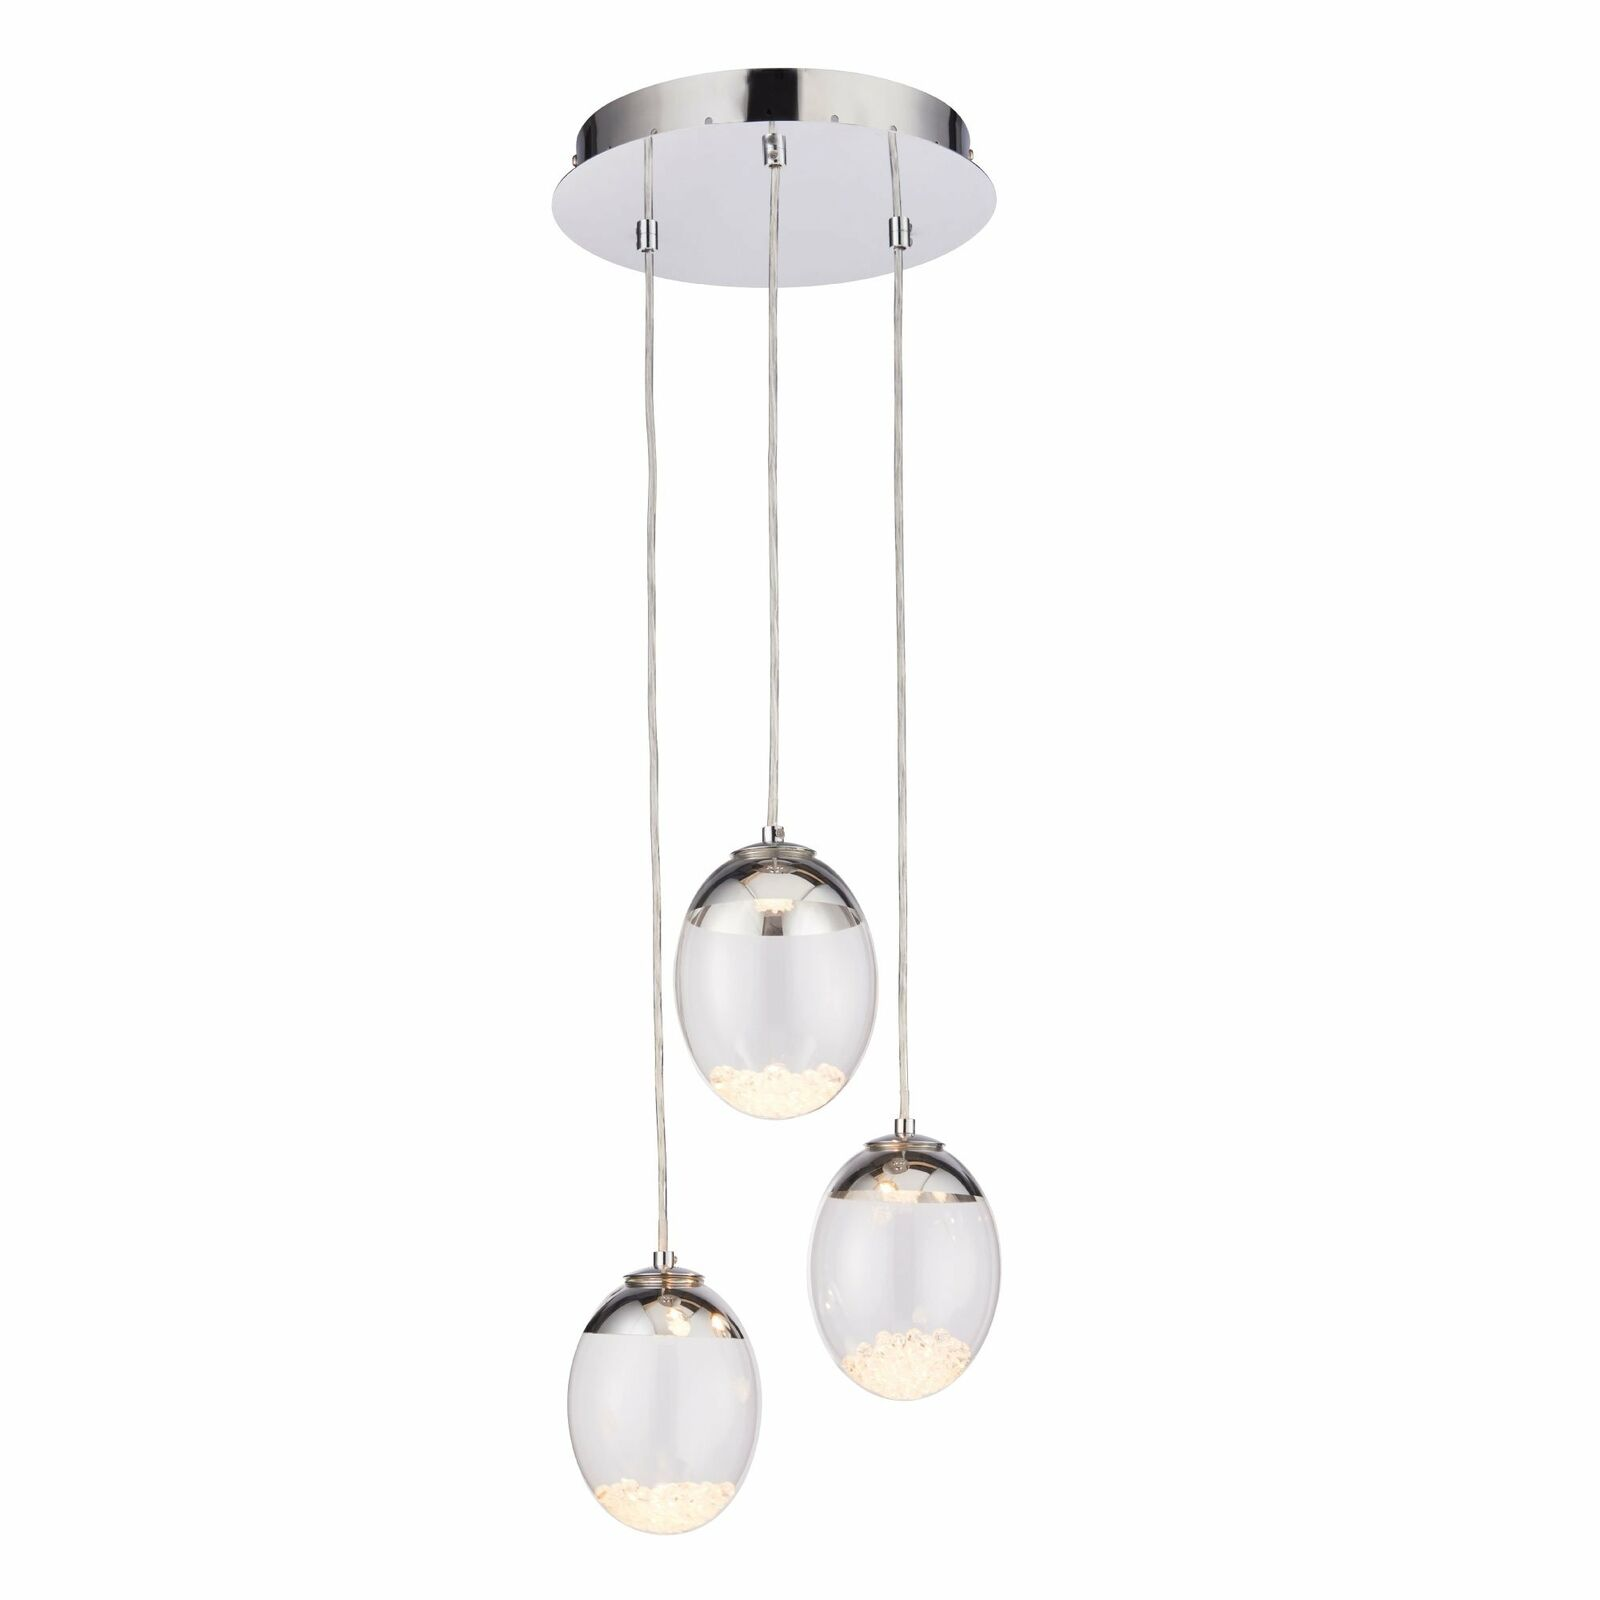 Endon Lighting Oria LED Pendant Ceiling Light Polished Chrome 76312